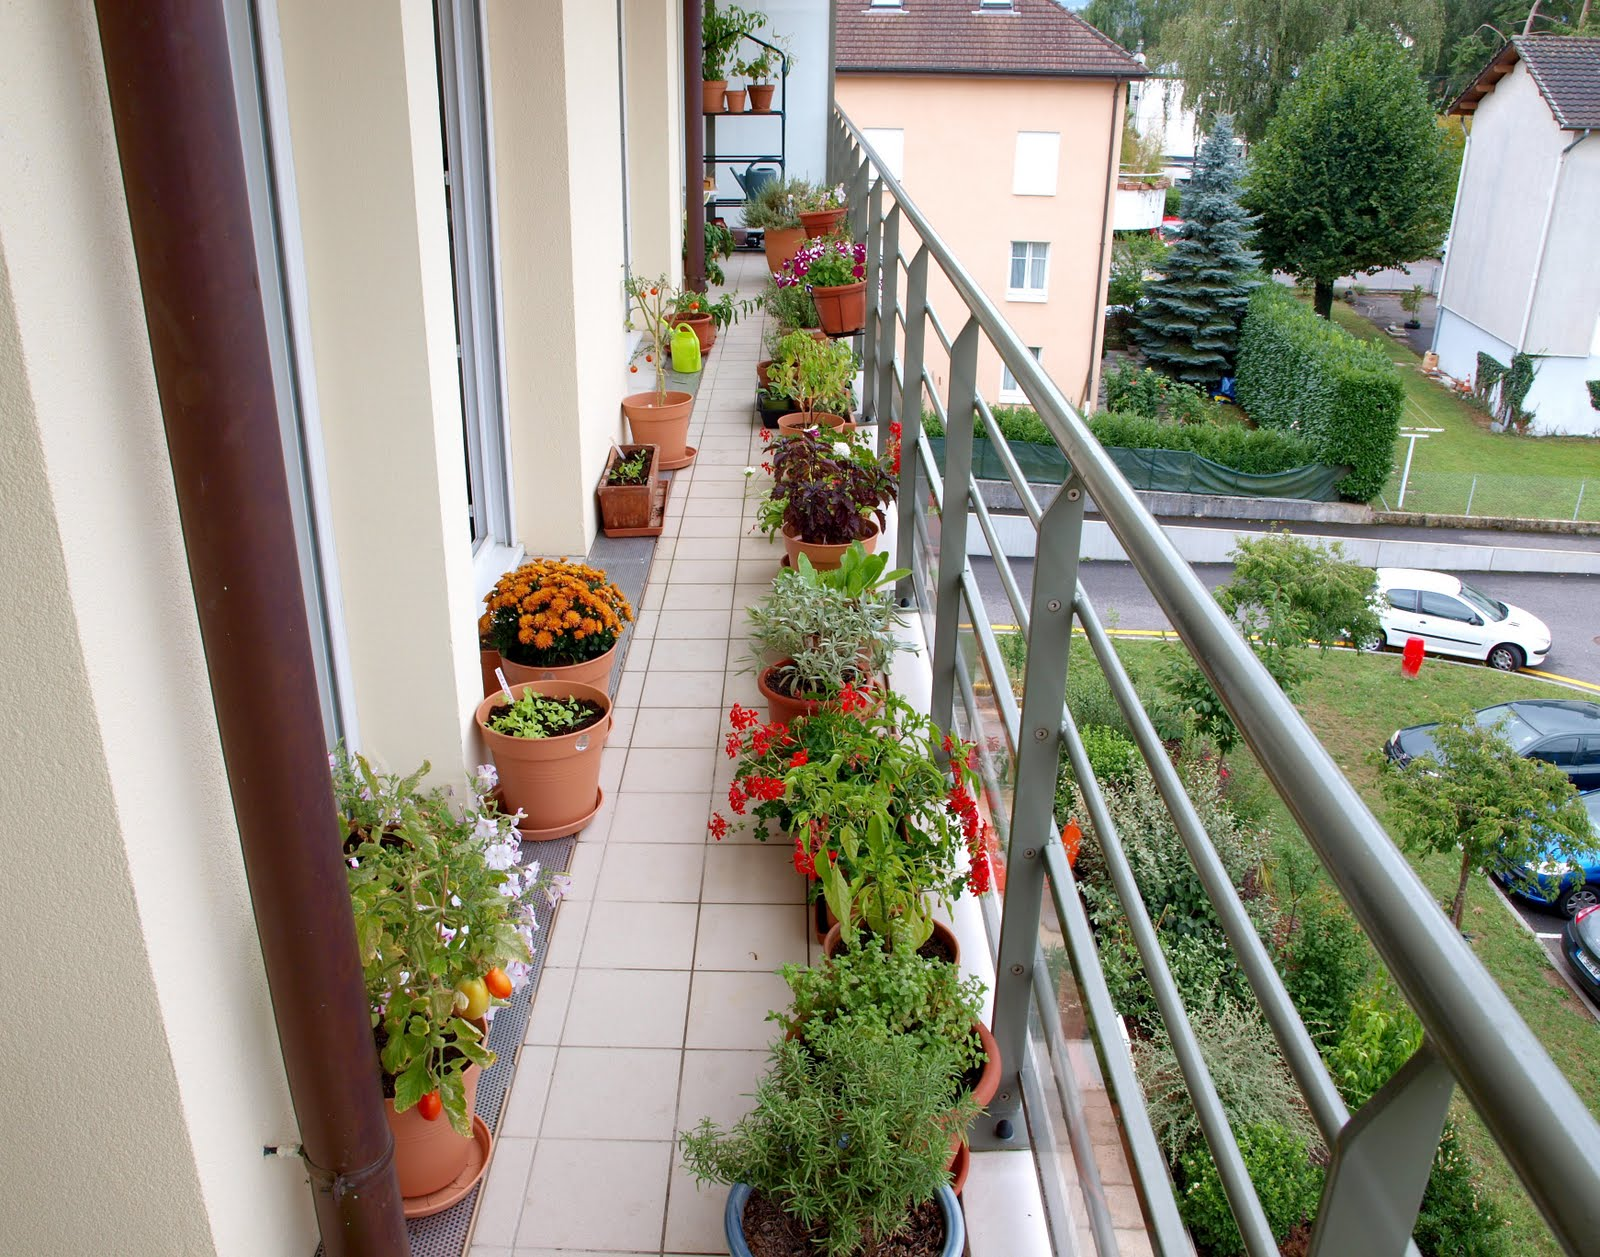 https://cdn.decoist.com/wp-content/uploads/2017/07/A-long-and-narrow-balcony-garden-.jpeg